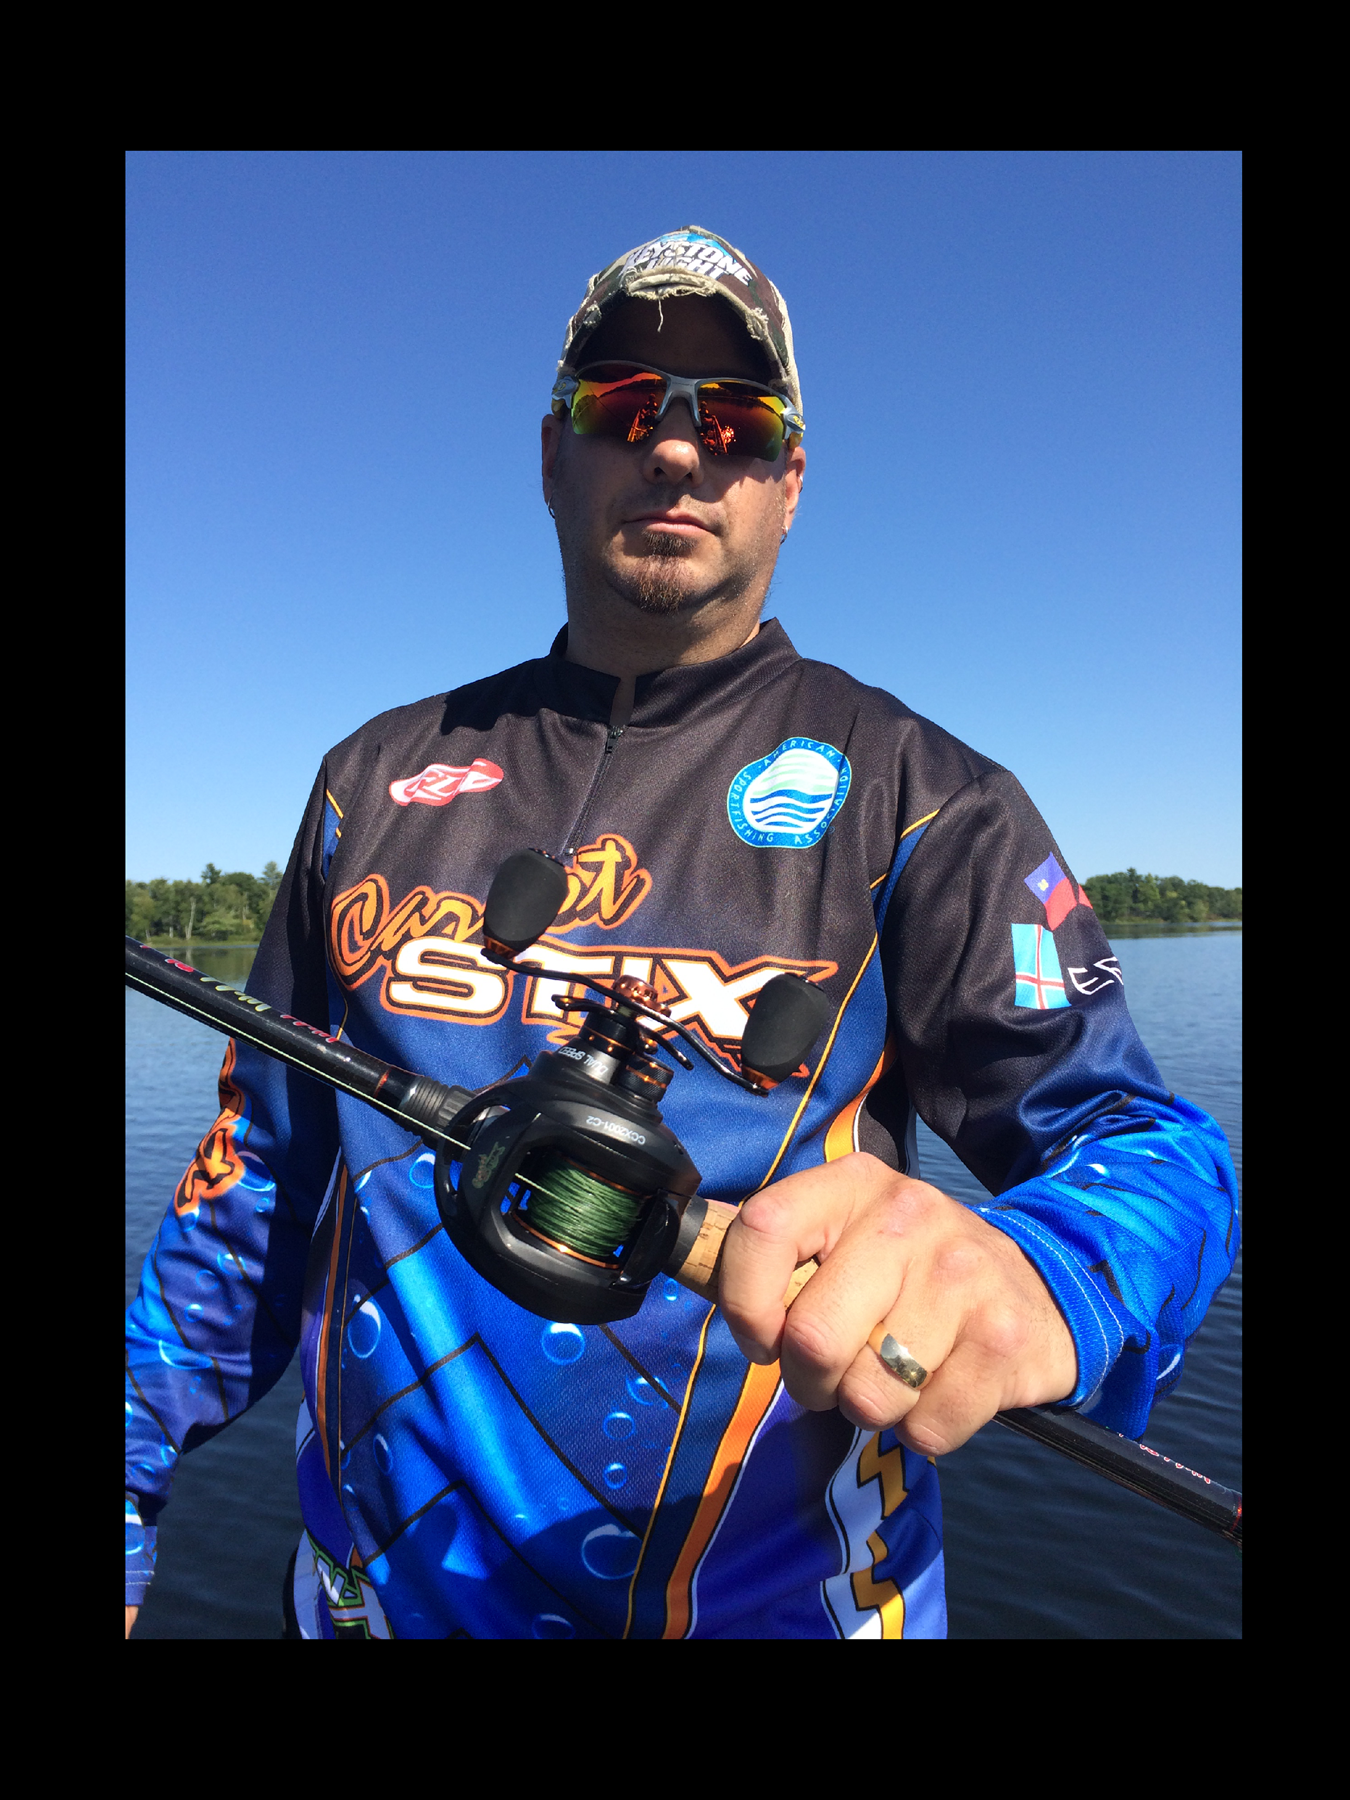 Carrot Stix Dual Speed casting reel review